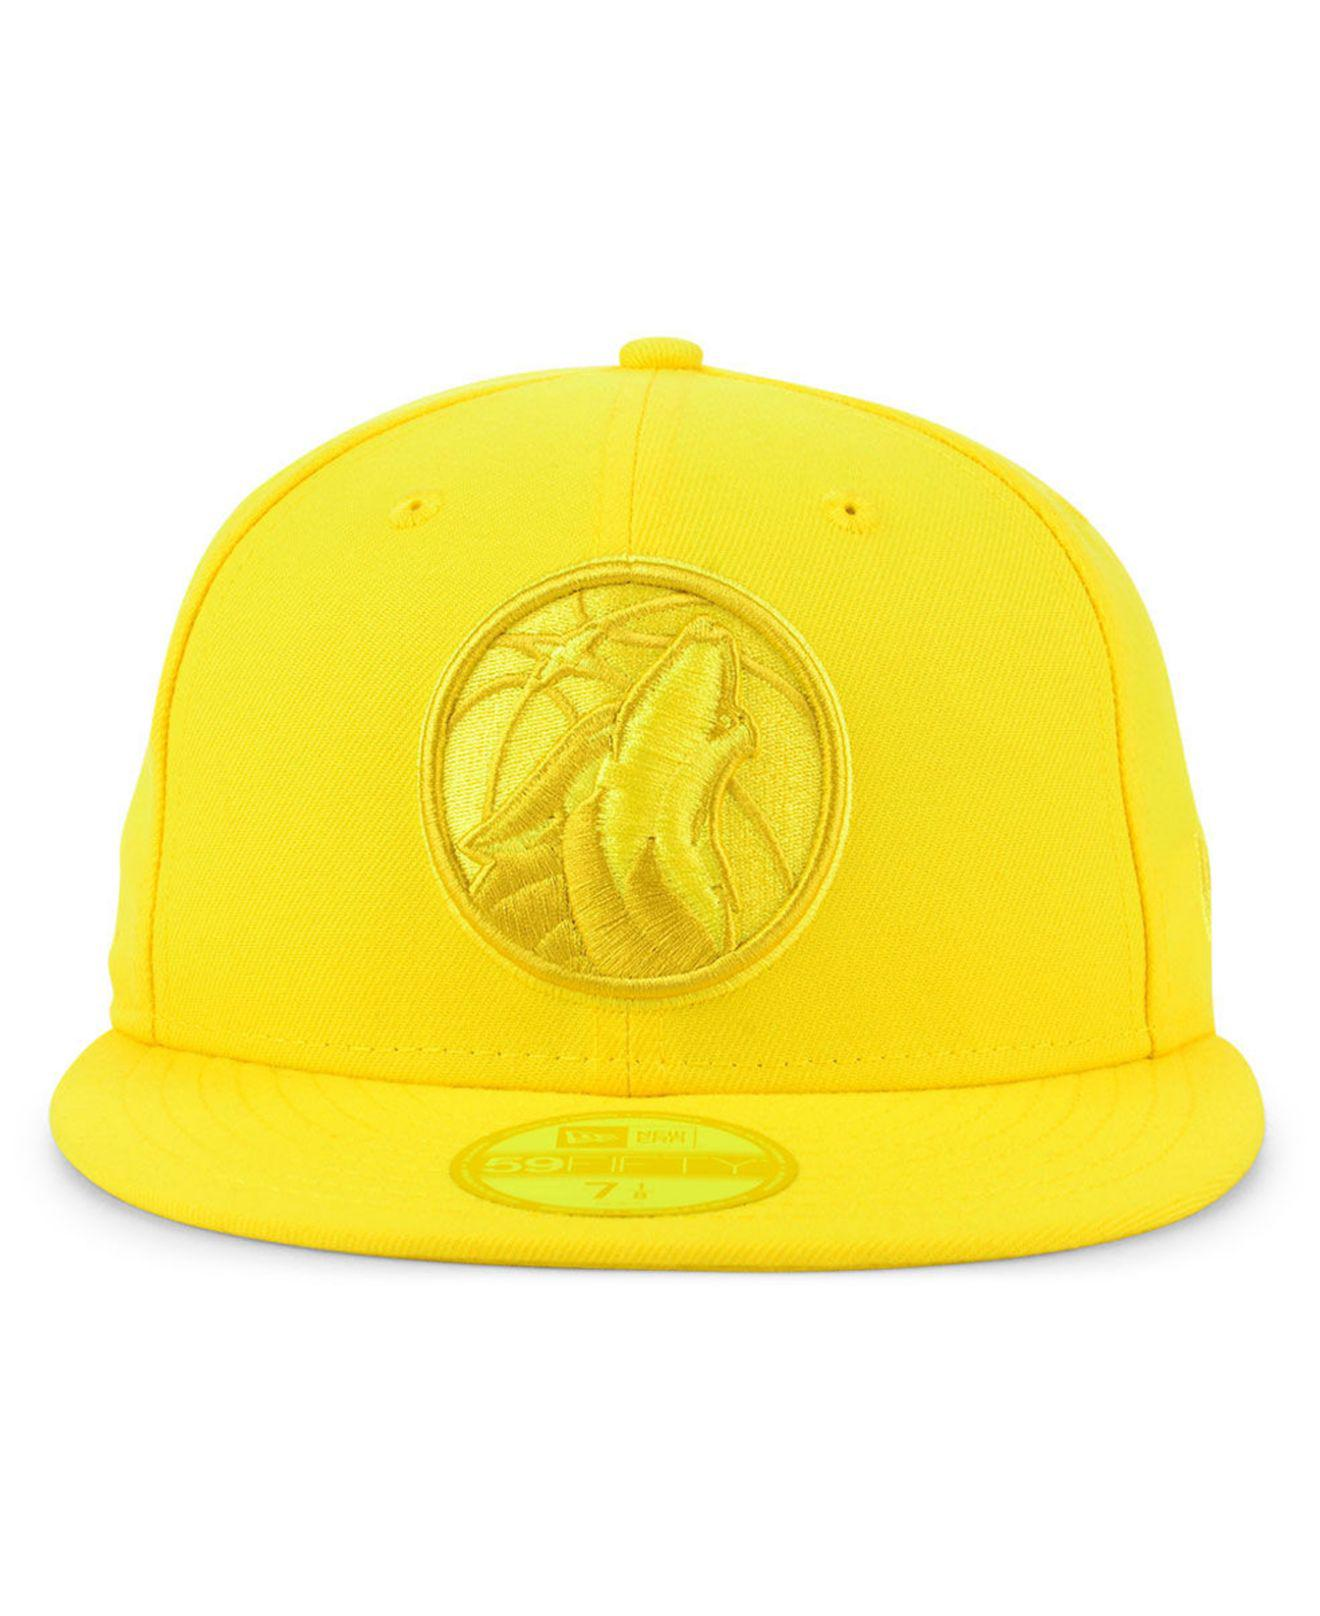 newest 2d8a7 17fce KTZ Minnesota Timberwolves Color Prism Pack 59fifty Fitted Cap in Yellow  for Men - Save 56% - Lyst